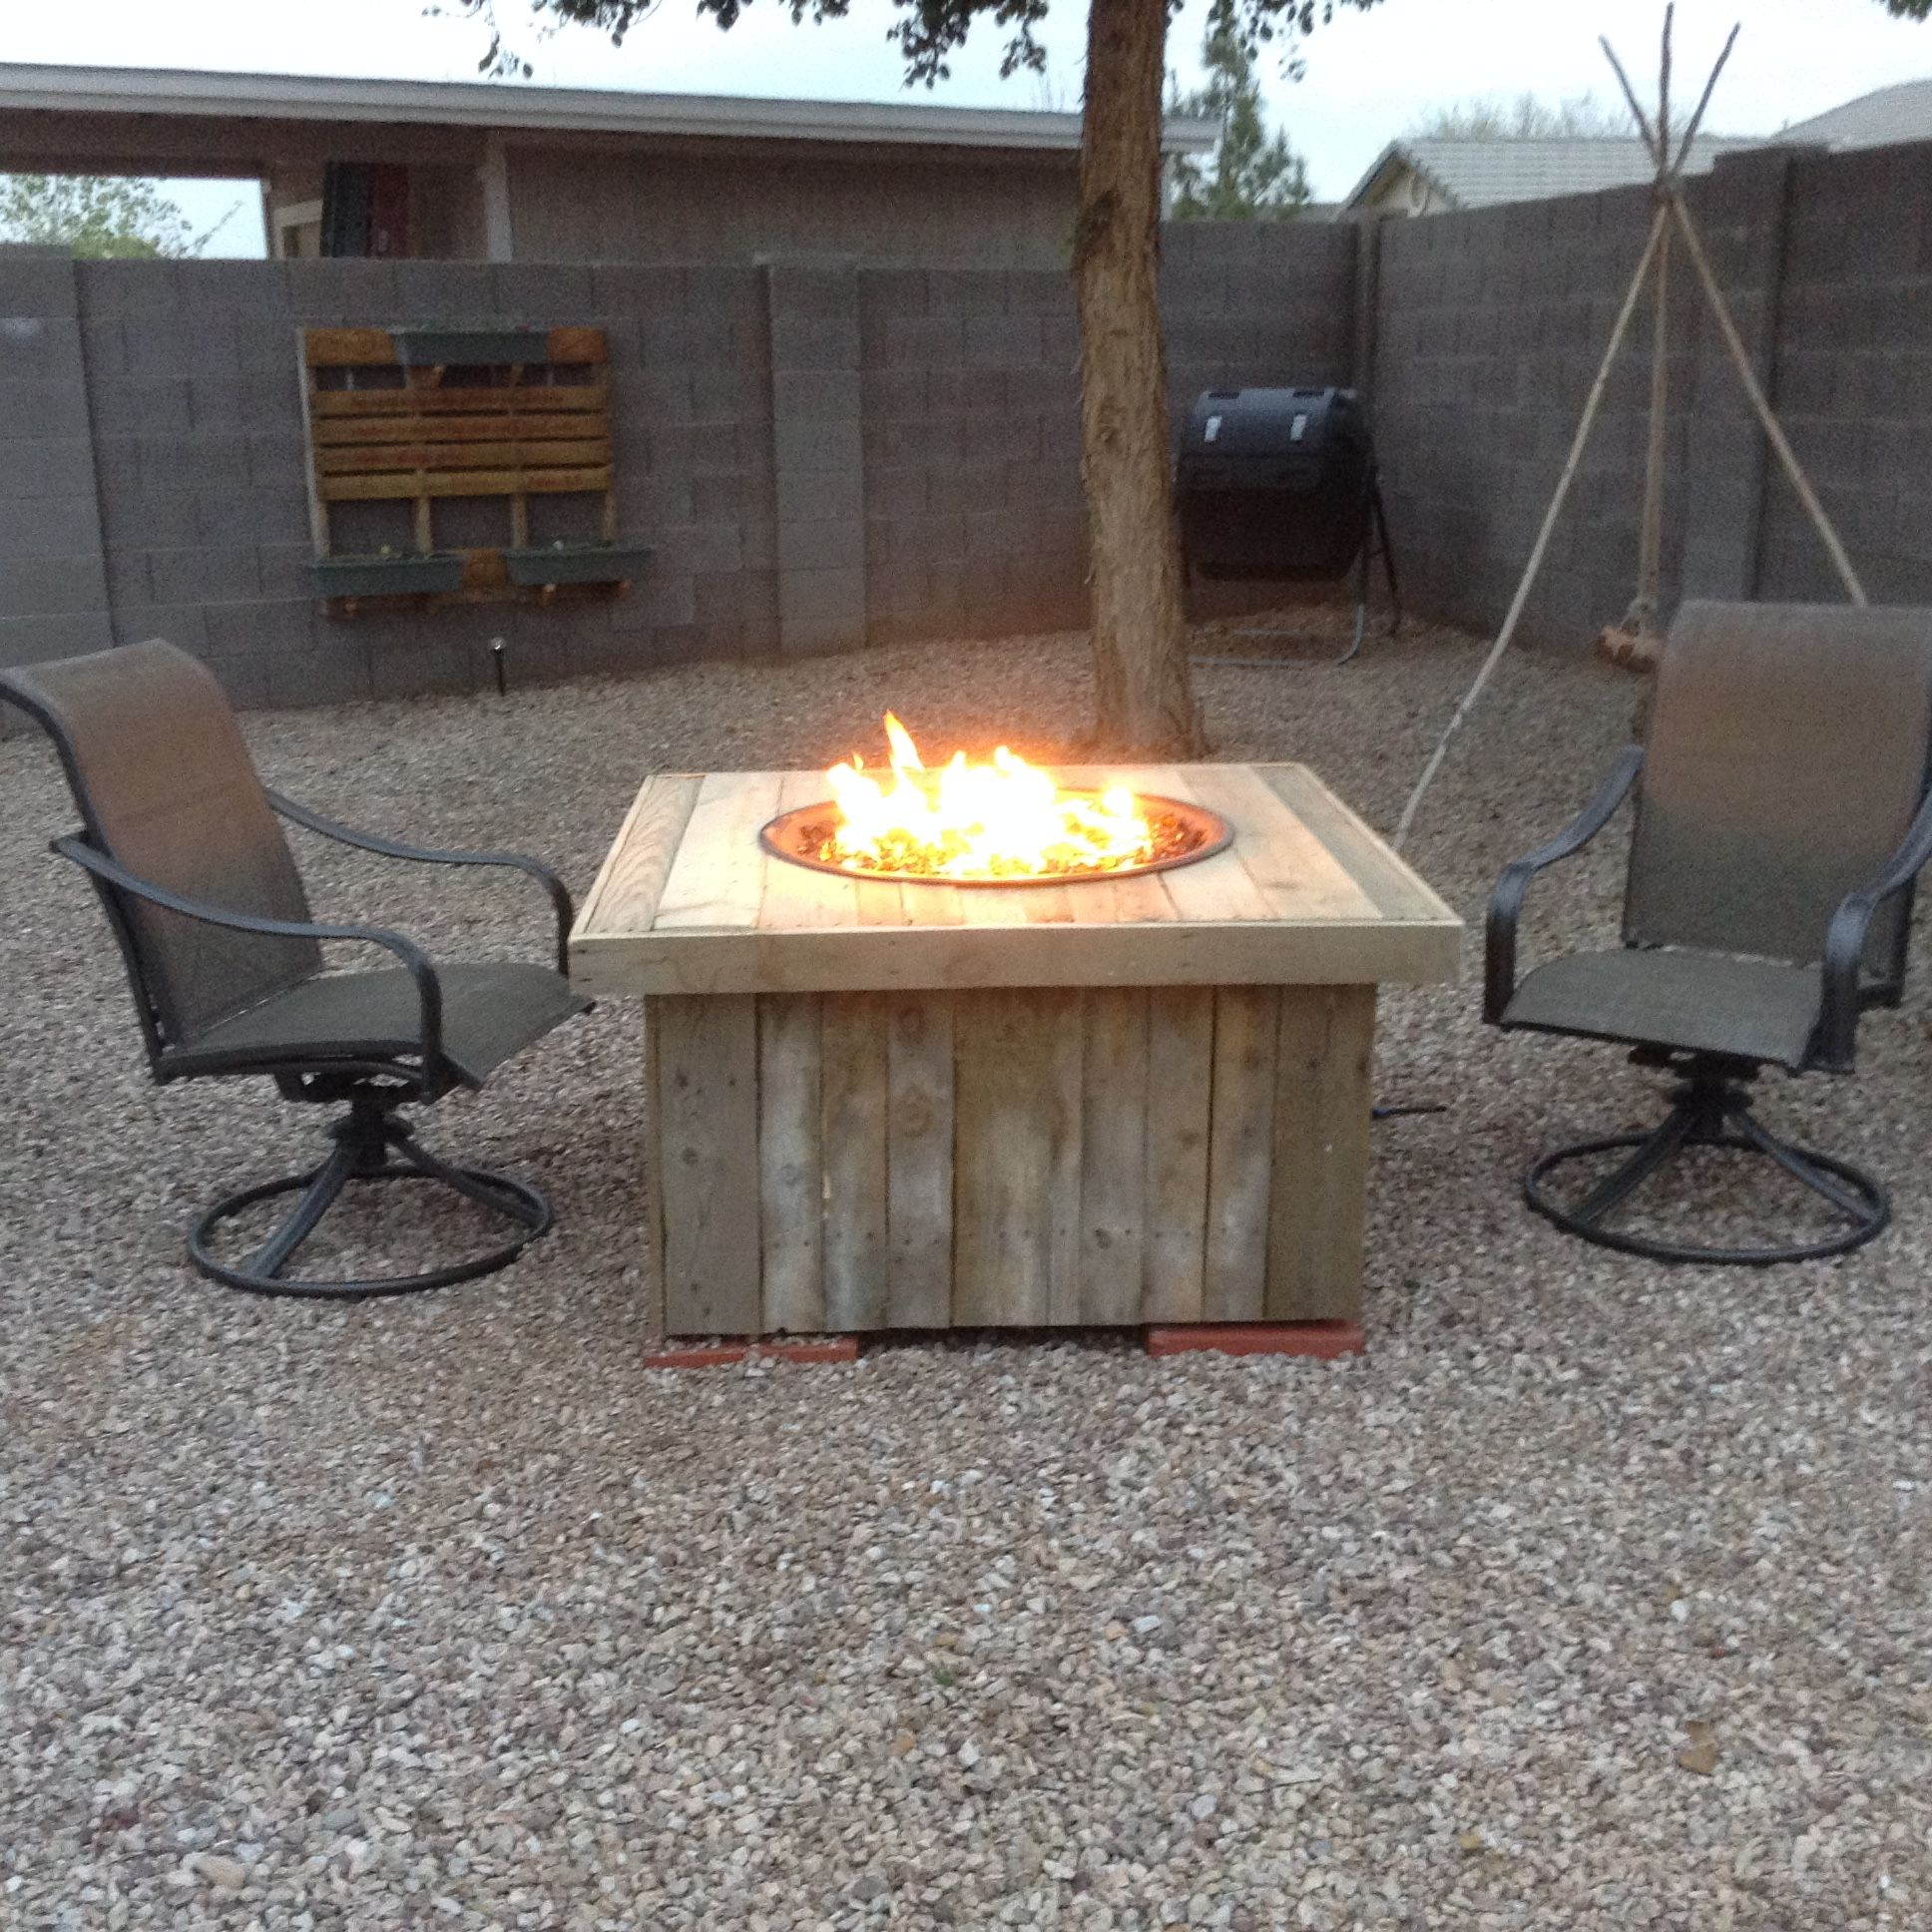 Firepit My Husband Built For Me He Converted A Cheap Wal Mart Wood Burning Pit To A Gas Pit Framed With Pallet Wo Fire Pit Gas Firepit Wood Burning Fire Pit